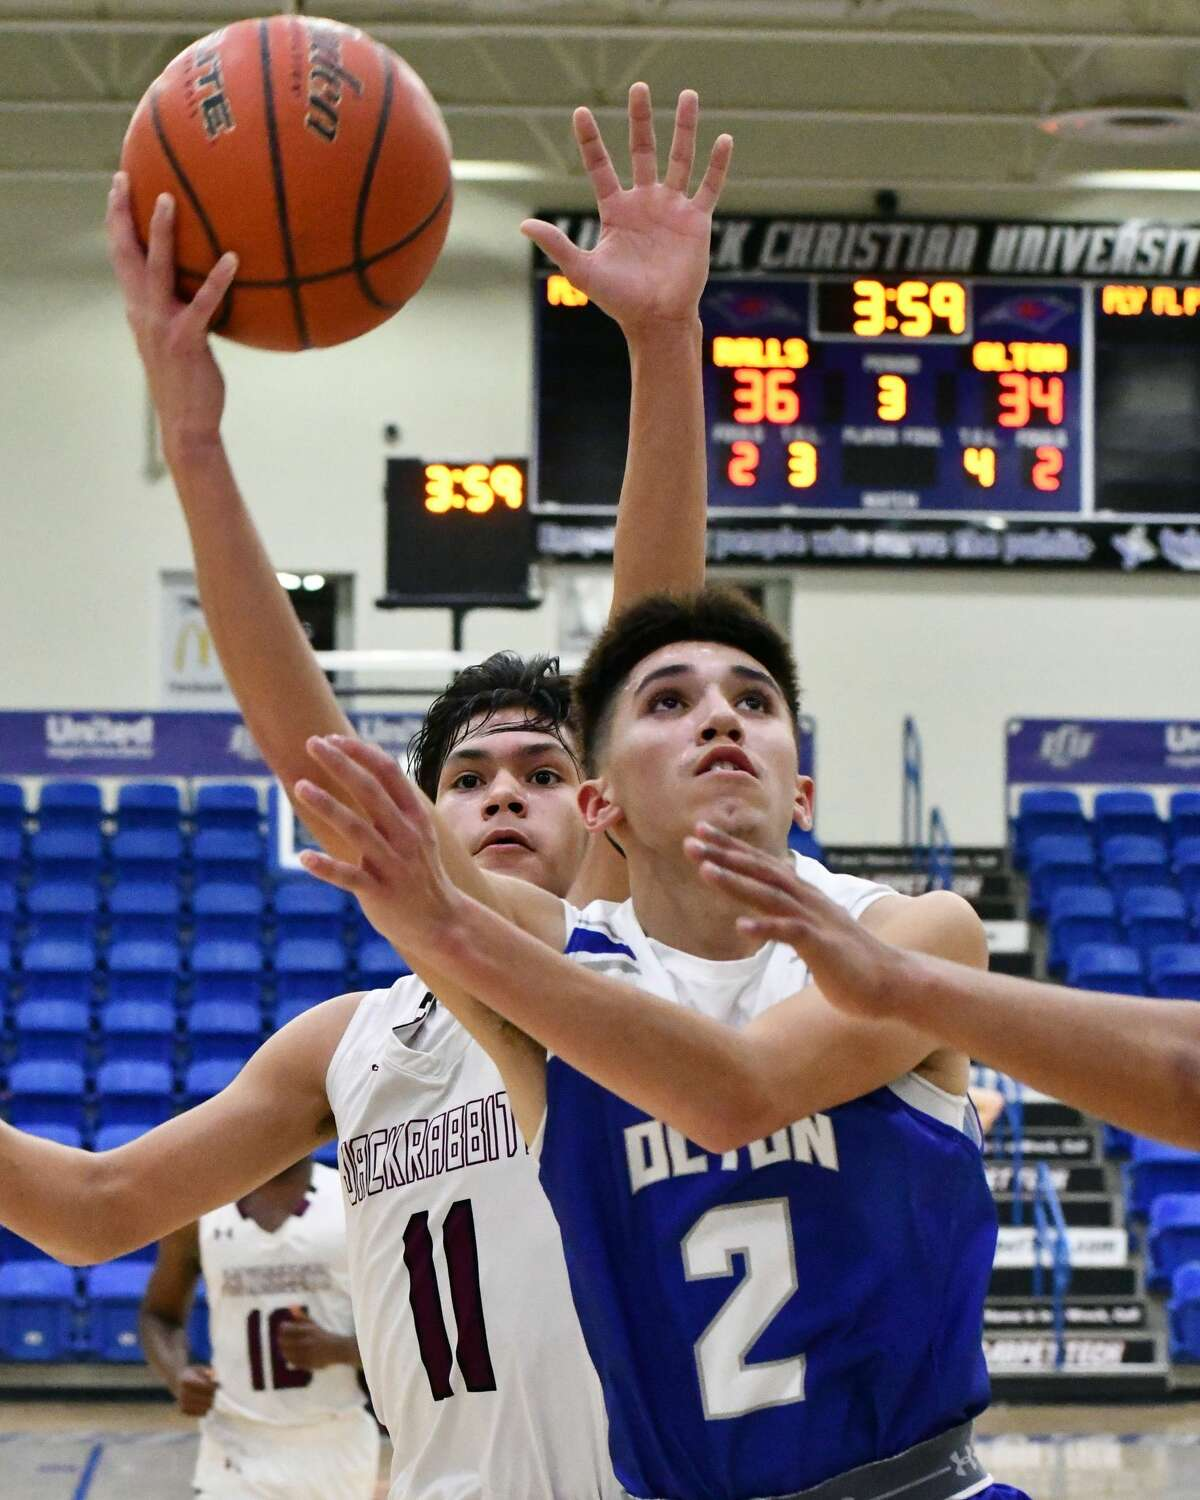 Olton's Jake Soliz puts up the shot attempt against Ralls during their Class 2A bi-district boys basketball playoff game on Friday in the Rip Griffin Center at Lubbock Christian University.